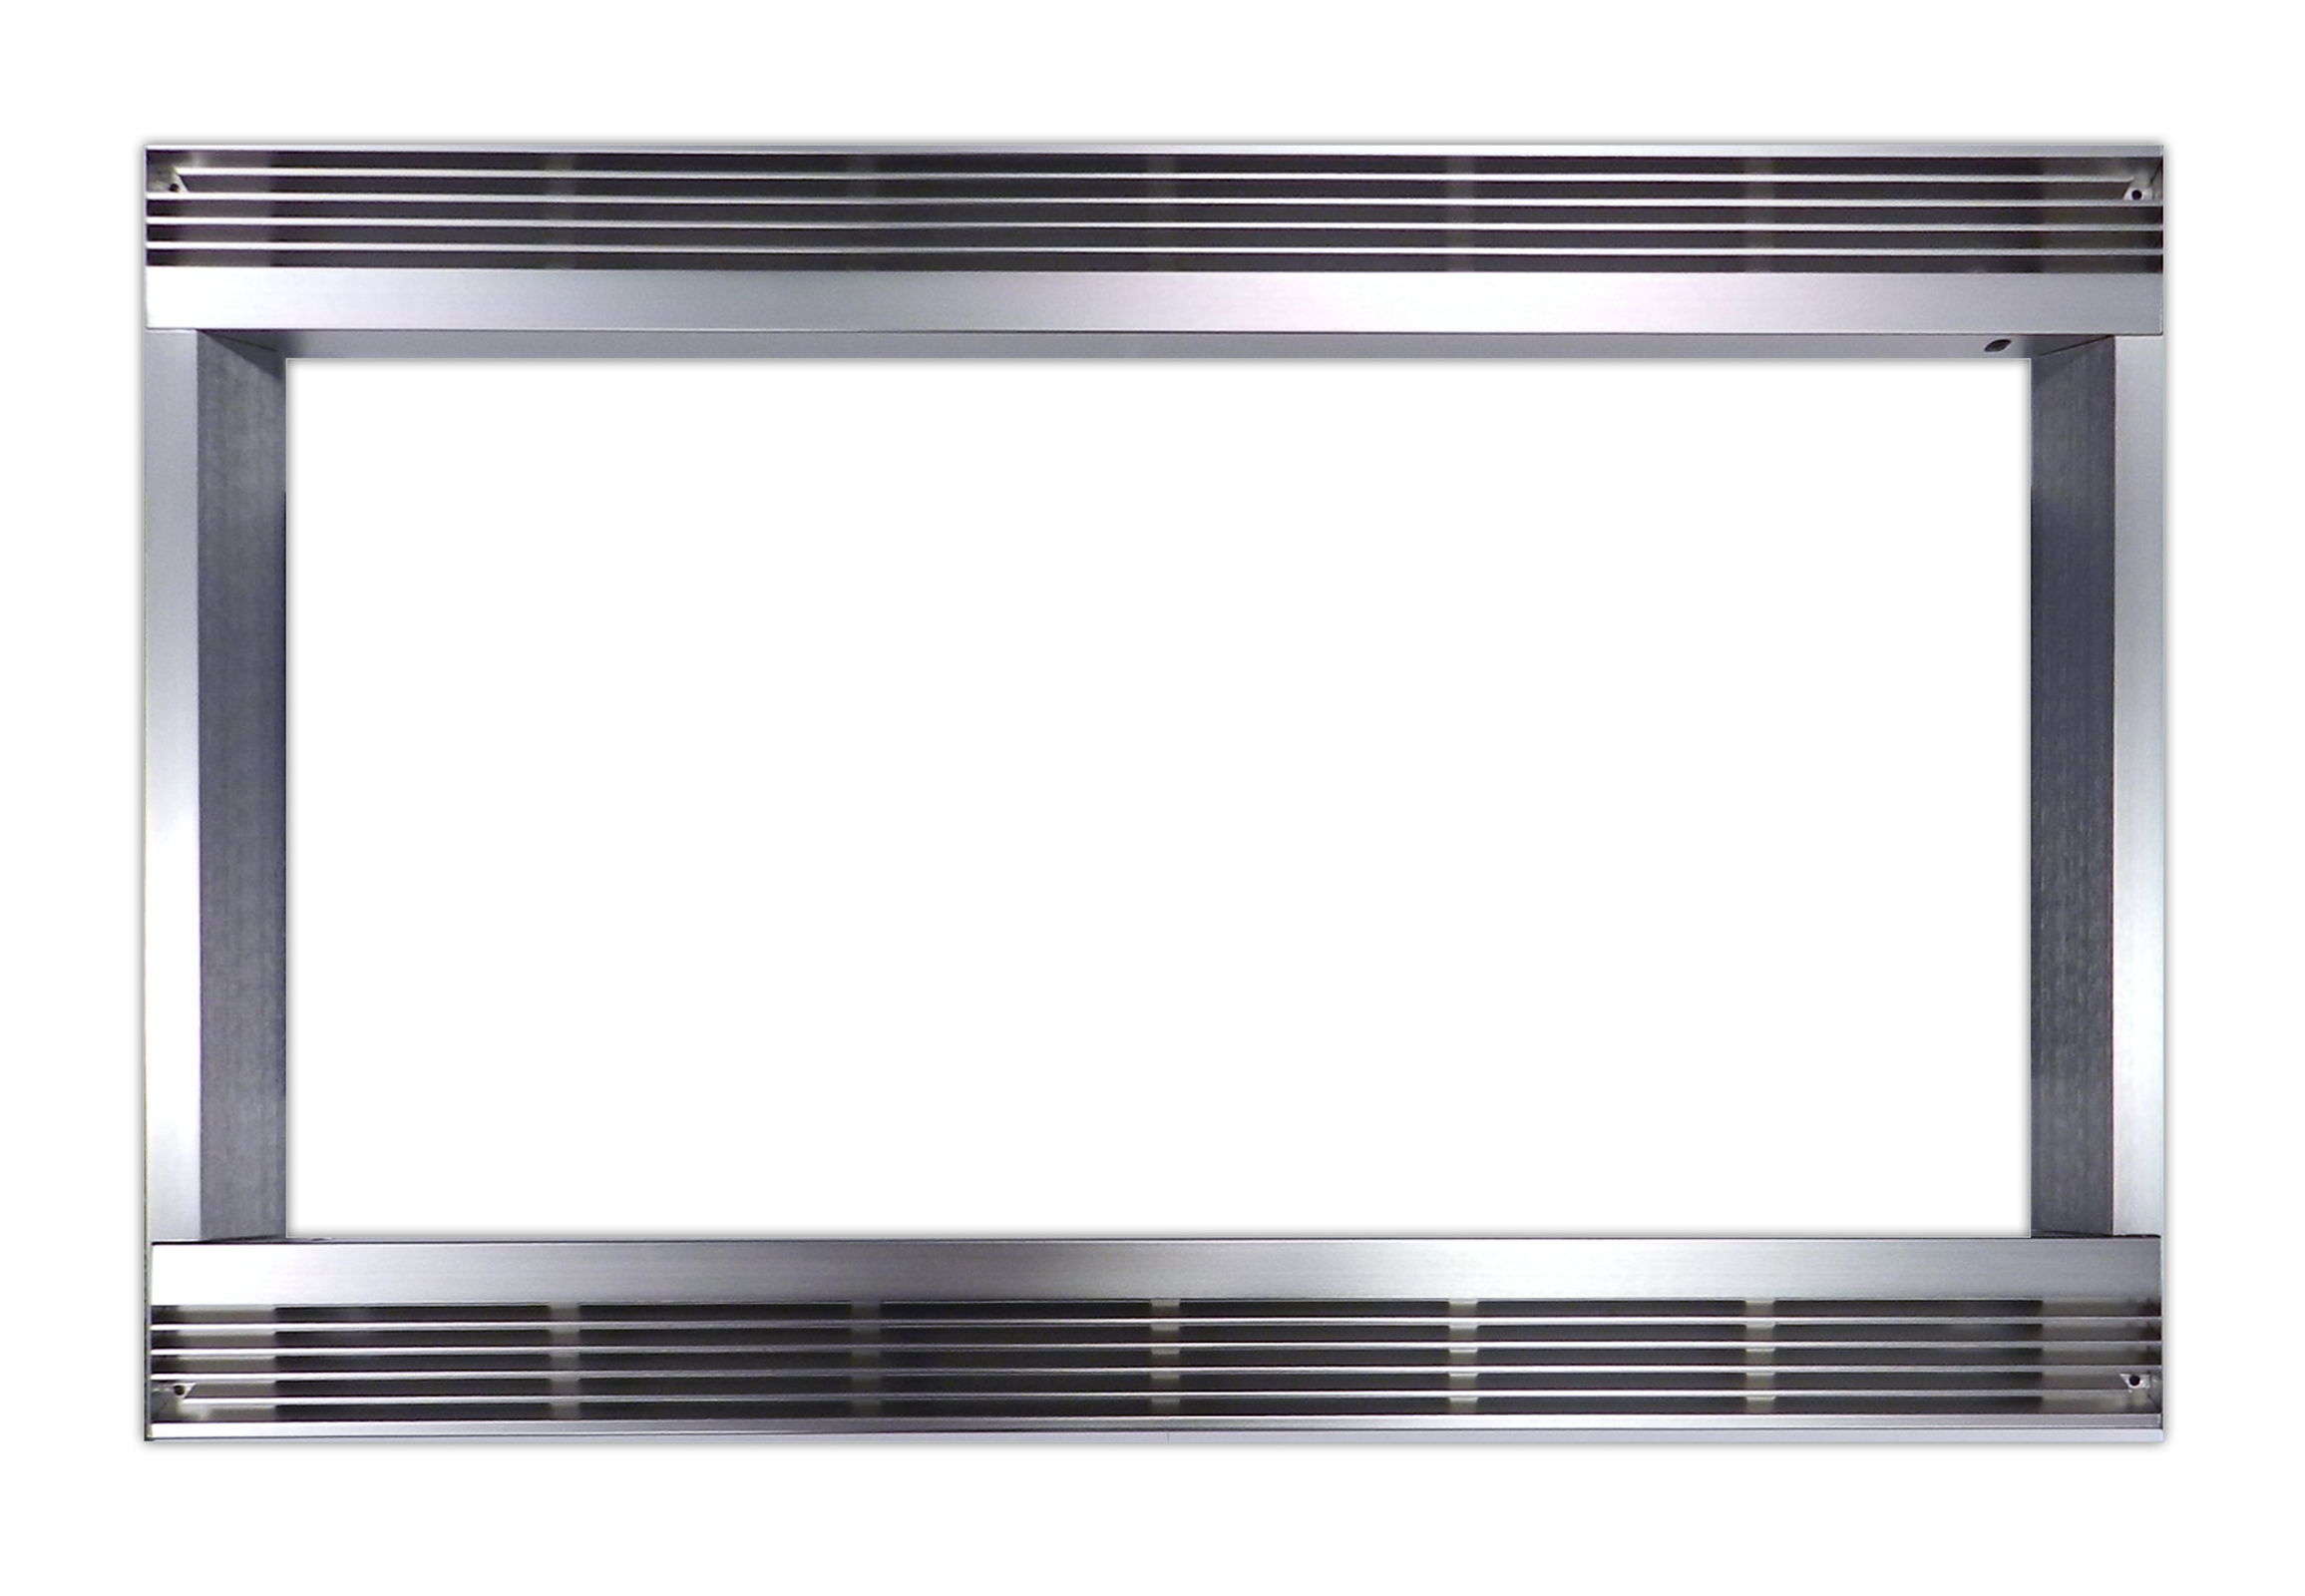 Sharp 27 In Built In Trim Kit For Sharp Microwave R551zs